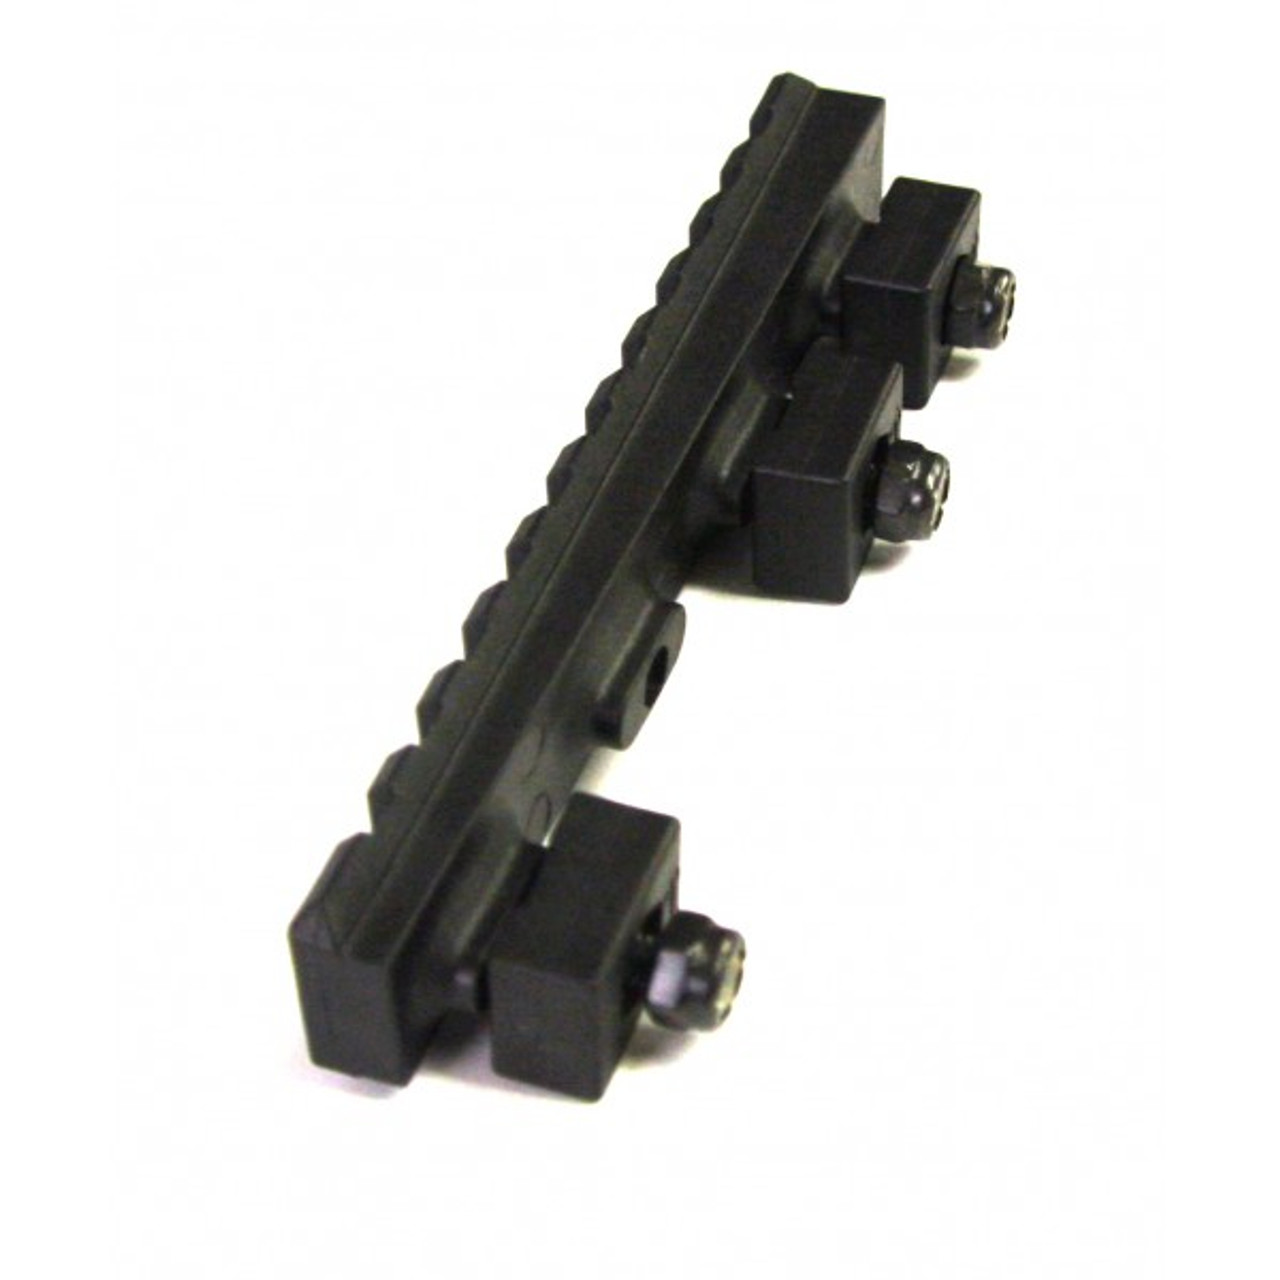 Archangel® OPFOR® Forend Rail for AA9130 / AA98 / AAT3 Stocks - Black Polymer